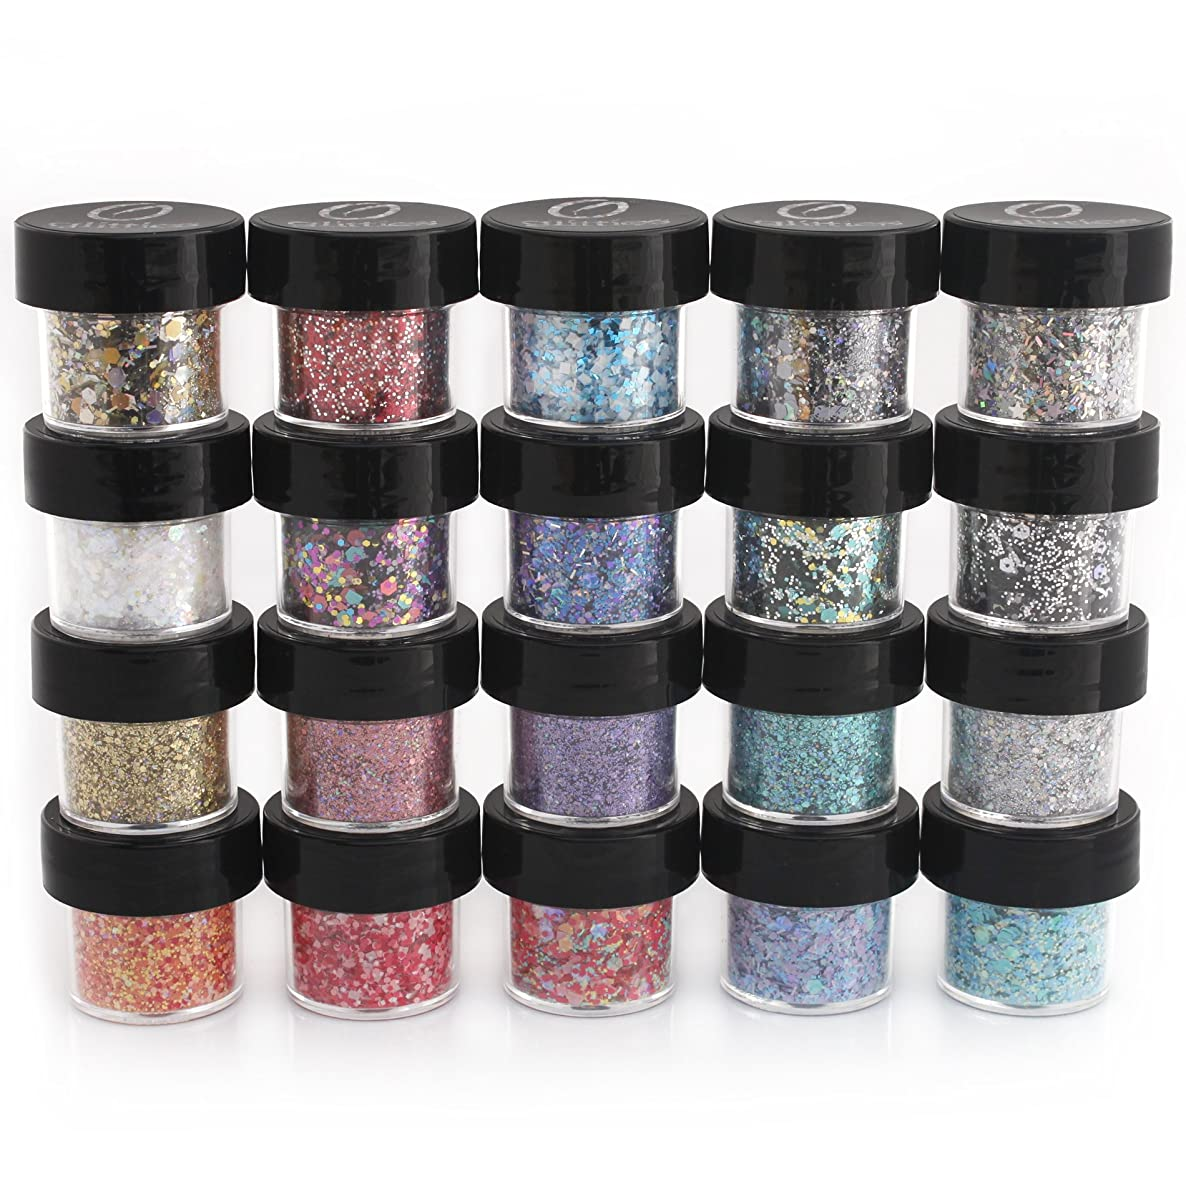 Mixed Glitter 20 Piece Kit – Includes Solvent Resistant Dust, Powder, Hexagon, Holographic, Matte Glitters - Great for Nail Art Polish, Gels, Art and Crafts, Paints & Acrylics Supplies - 1/4 OZ Jars